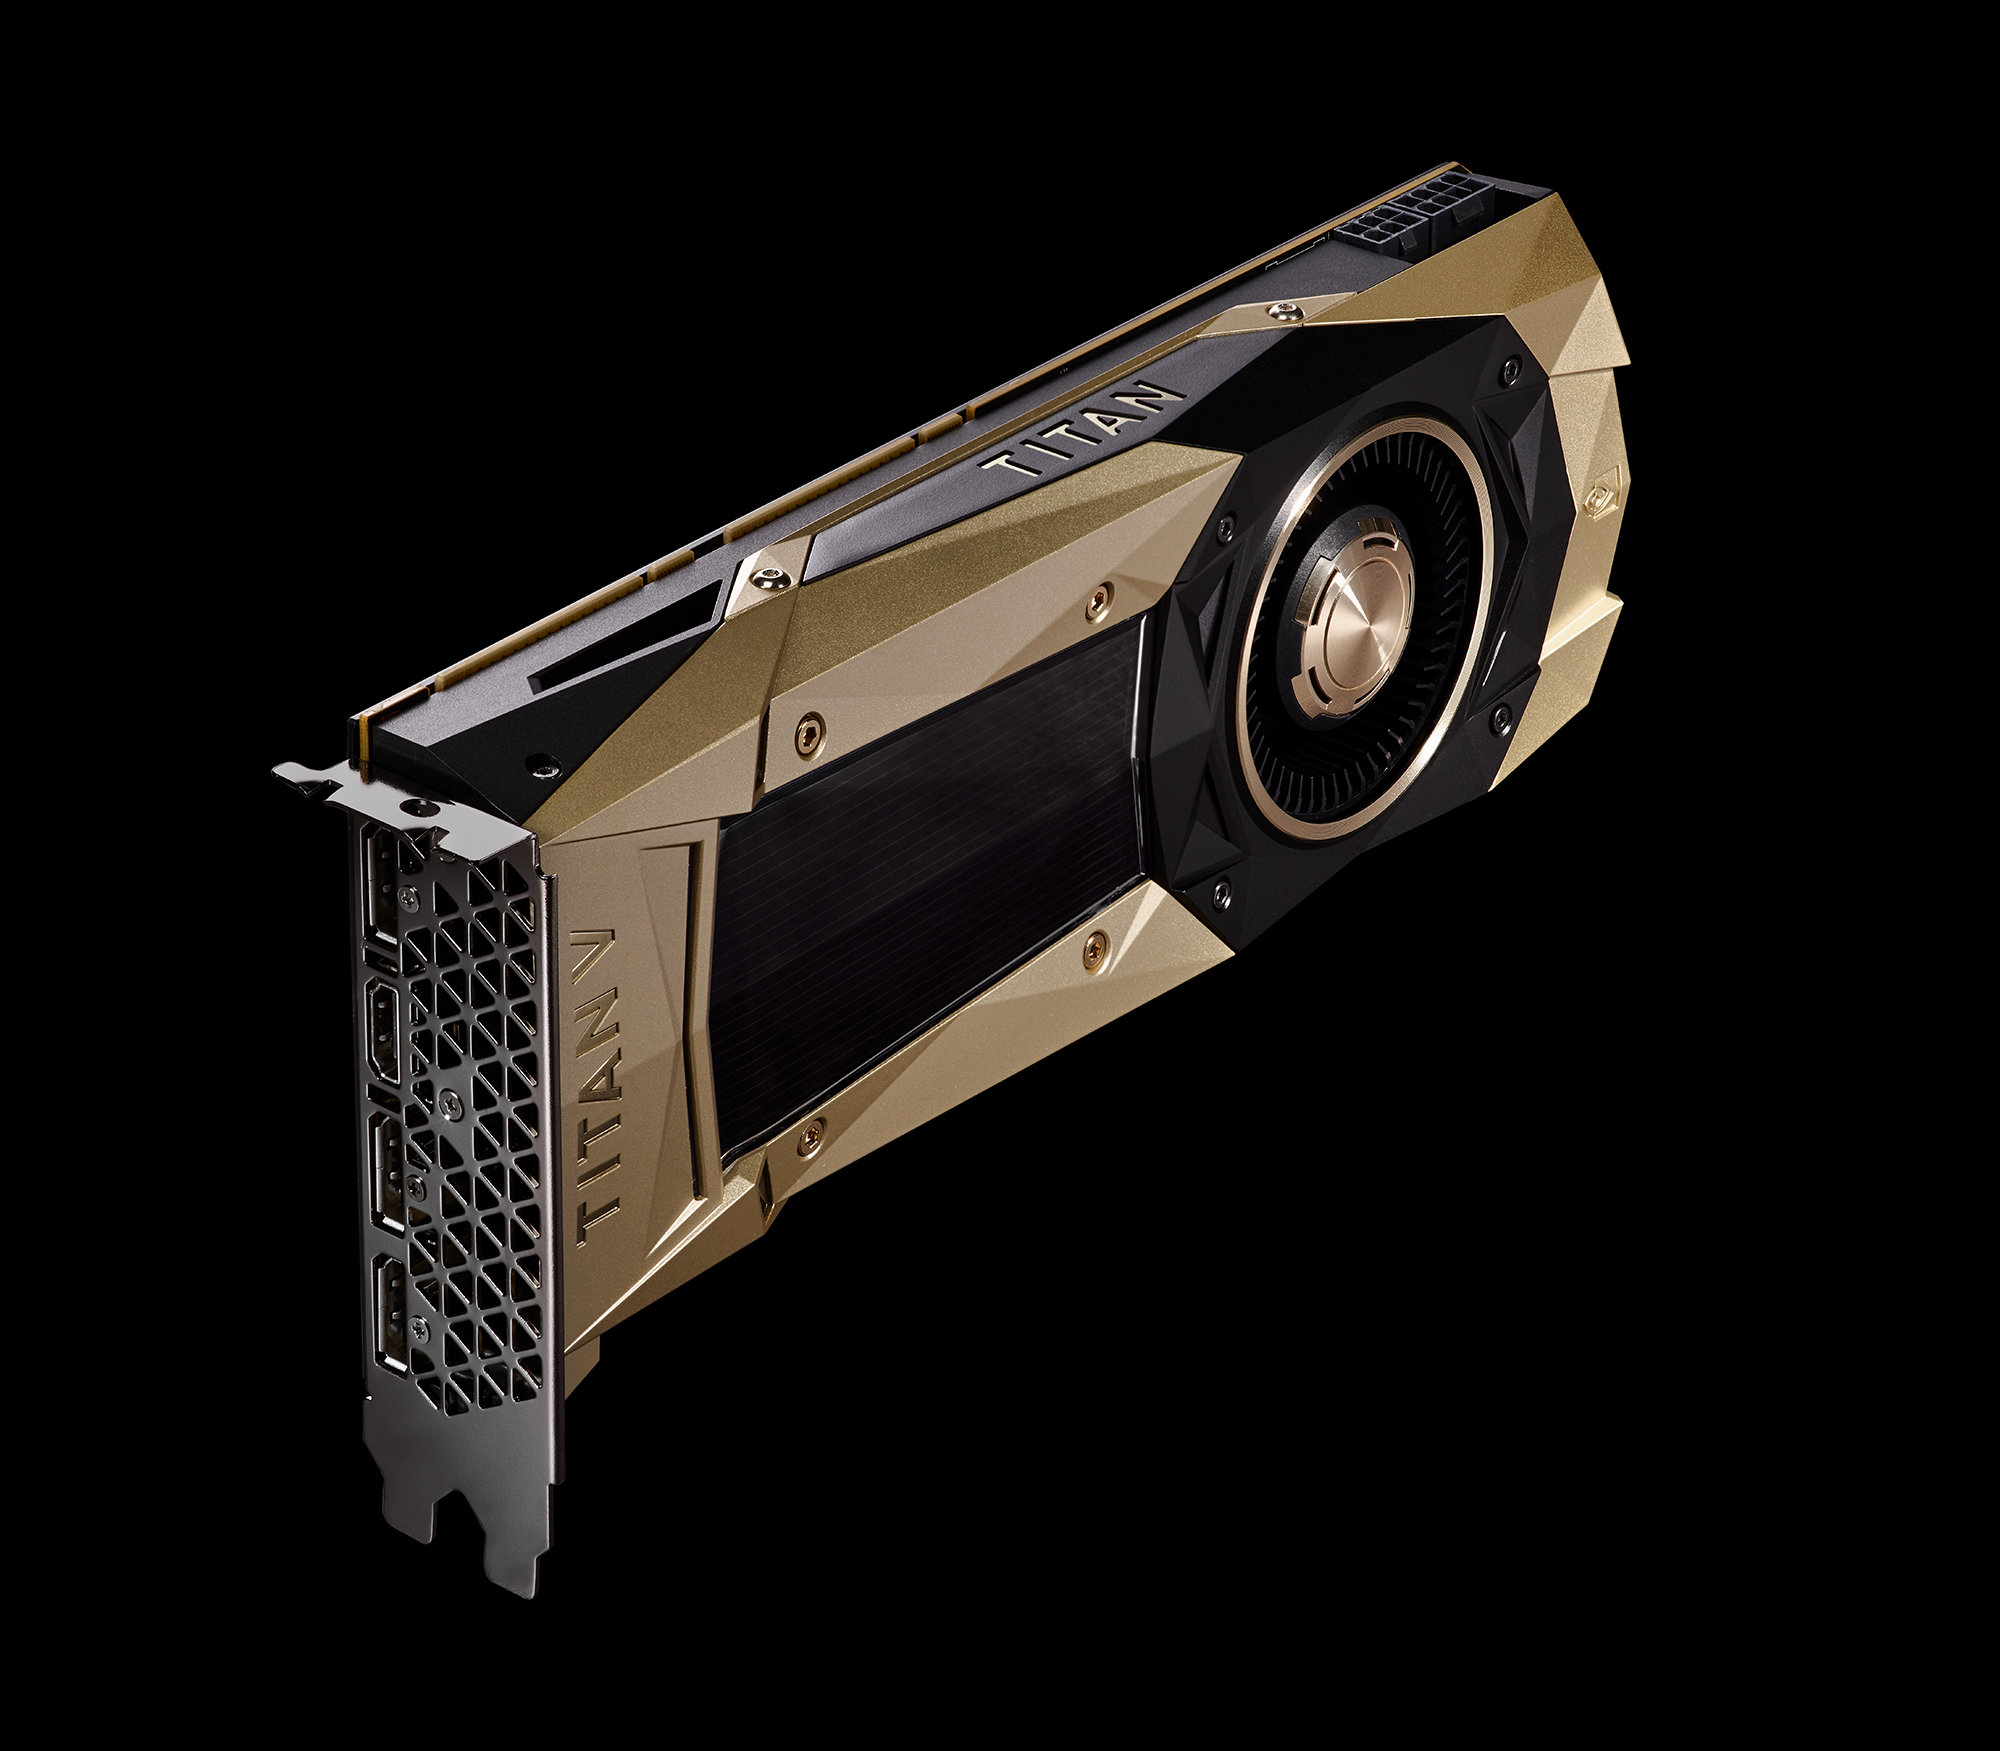 (Tech Xplore)—'Desktop GPU' is a phrase that could take scientific researchers places, with NVIDIA in the frontlines of their newcomer, TITAN  V. This is a graphics card created for the PC.